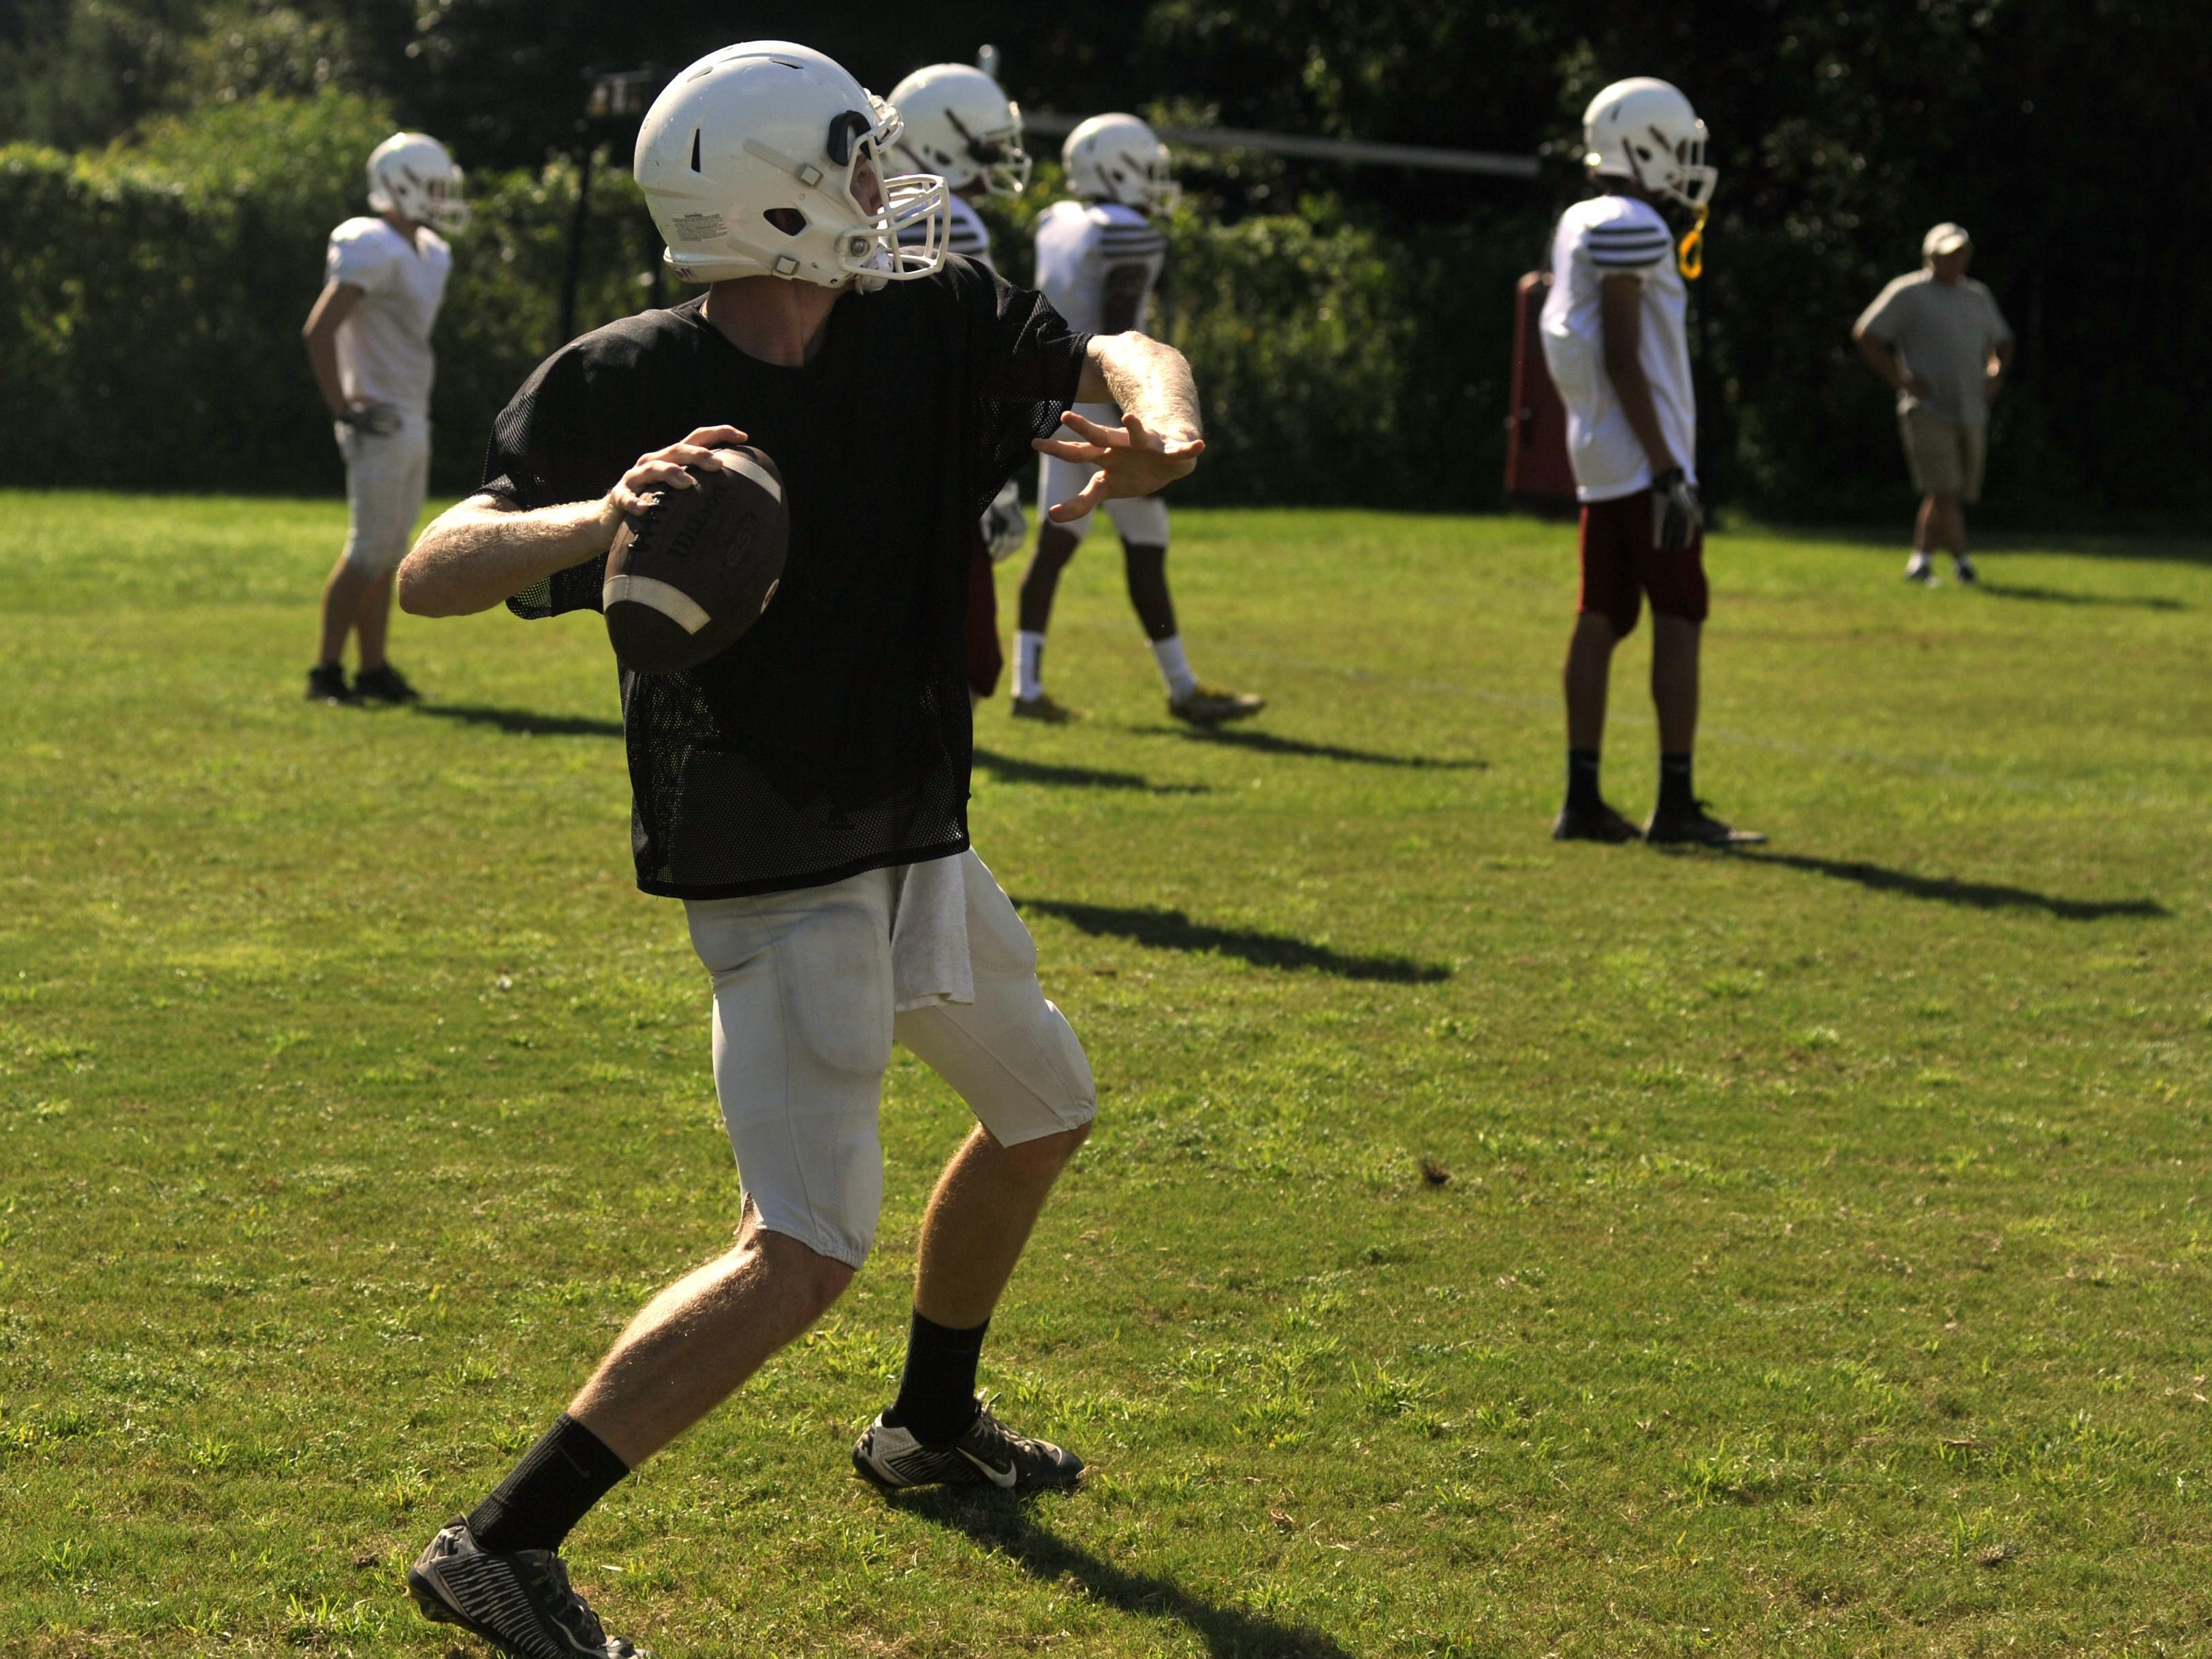 Tate starting quarterback Jake Henry throws a pass during practice on Aug. 16, 2016.